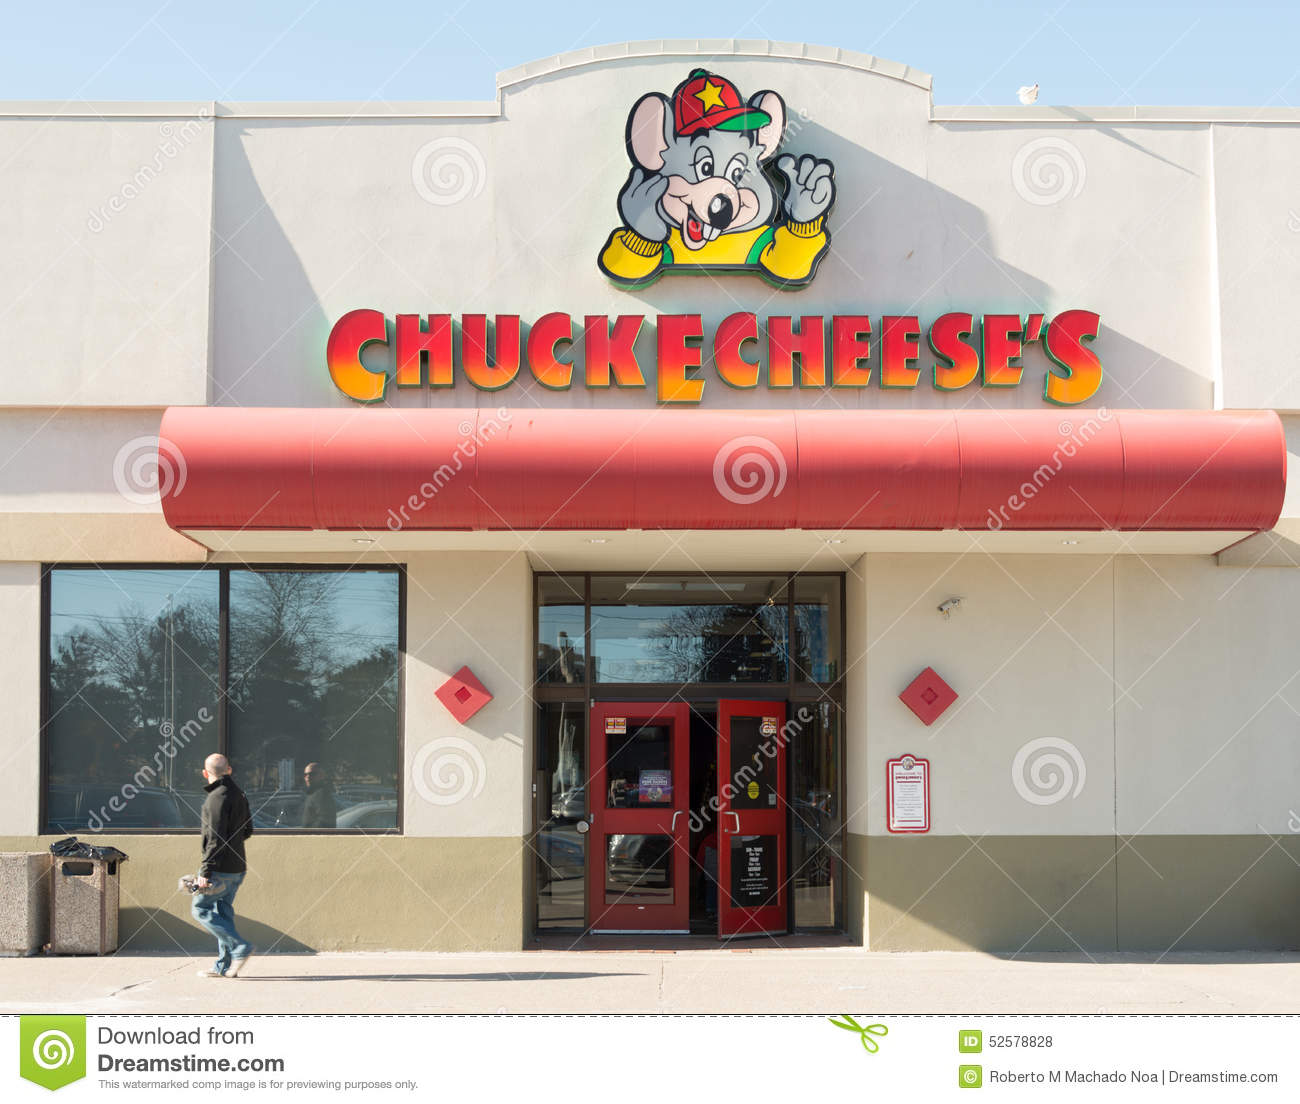 Chuck E. Cheese's: complete list of store locations, store hours and holiday hours in all states Chuck E. Cheese's in Canada Locations & Store Hours Listing of store locations and hours/5(65).